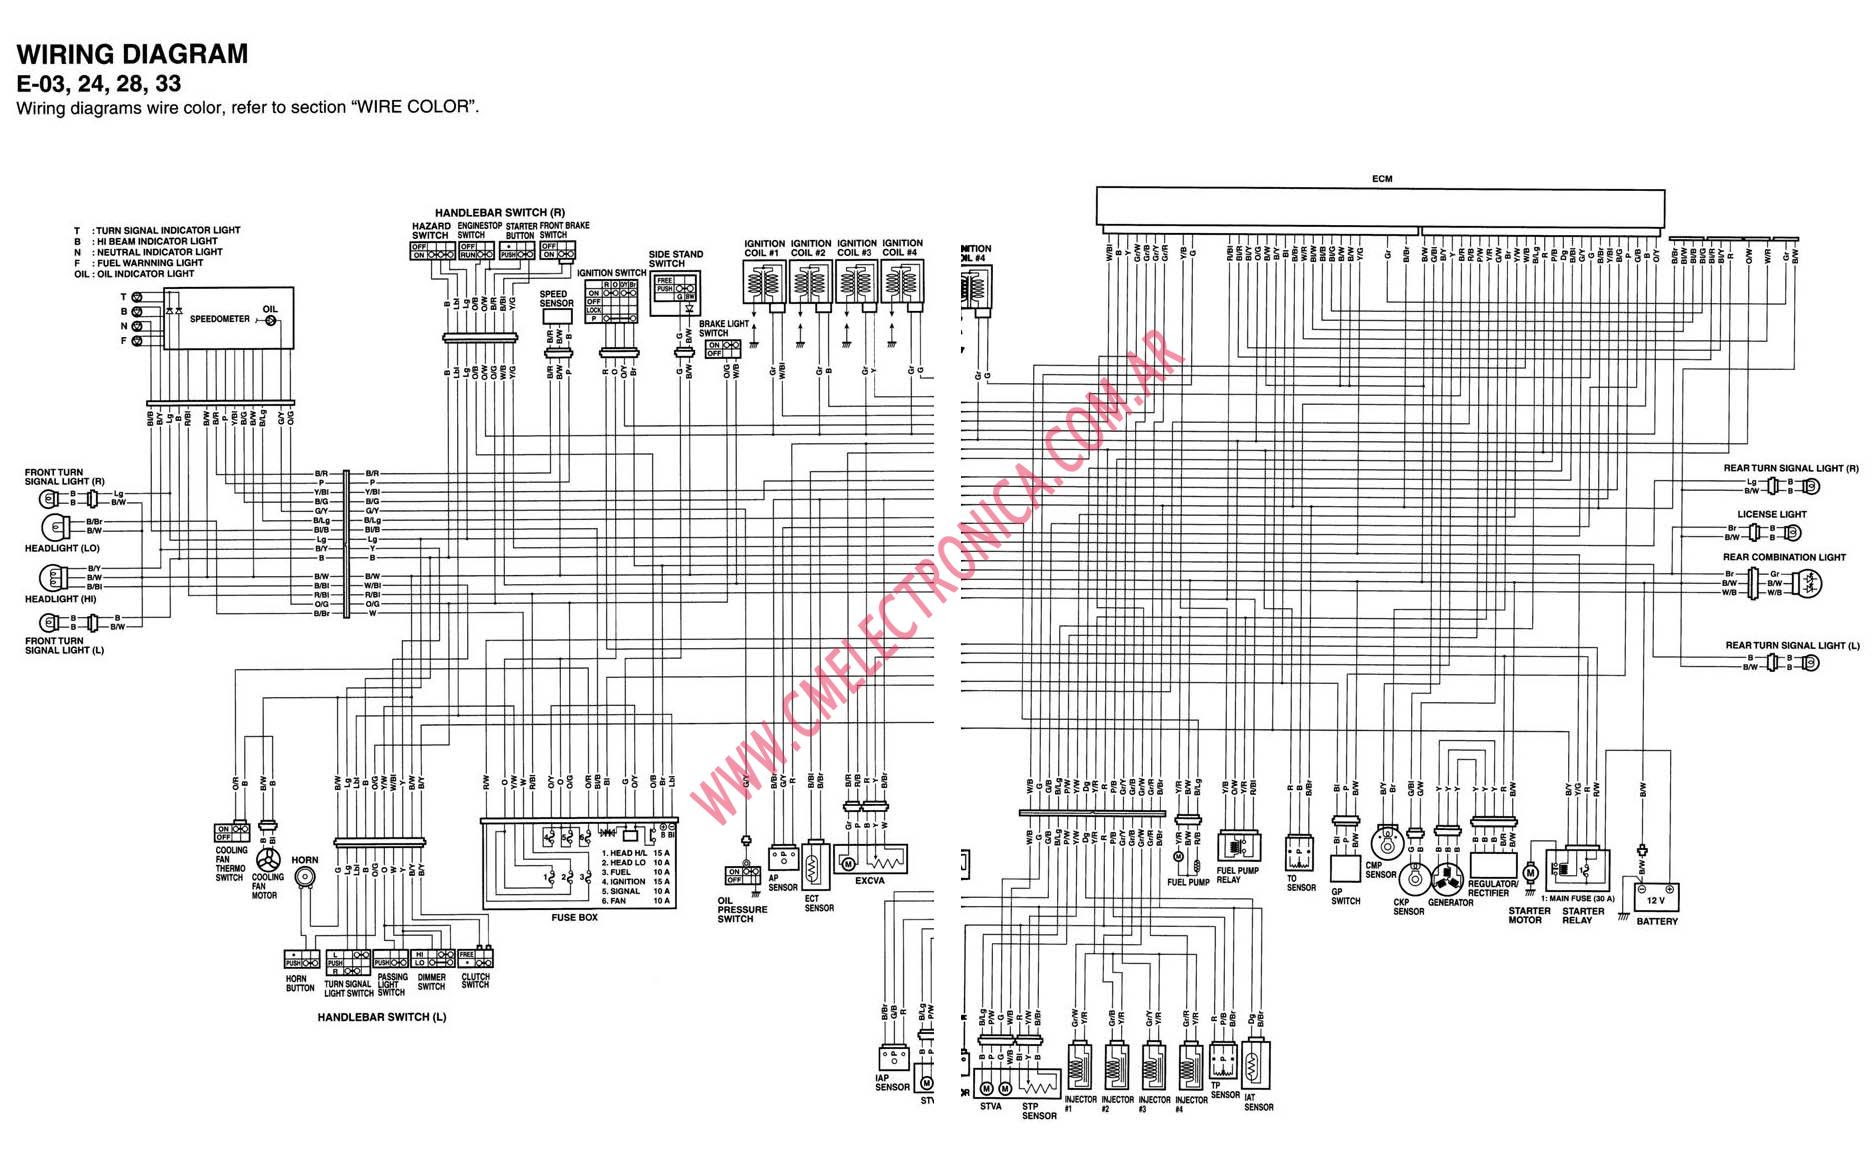 [DIAGRAM] 1980 Yamaha Xs850 Wiring Diagram FULL Version HD